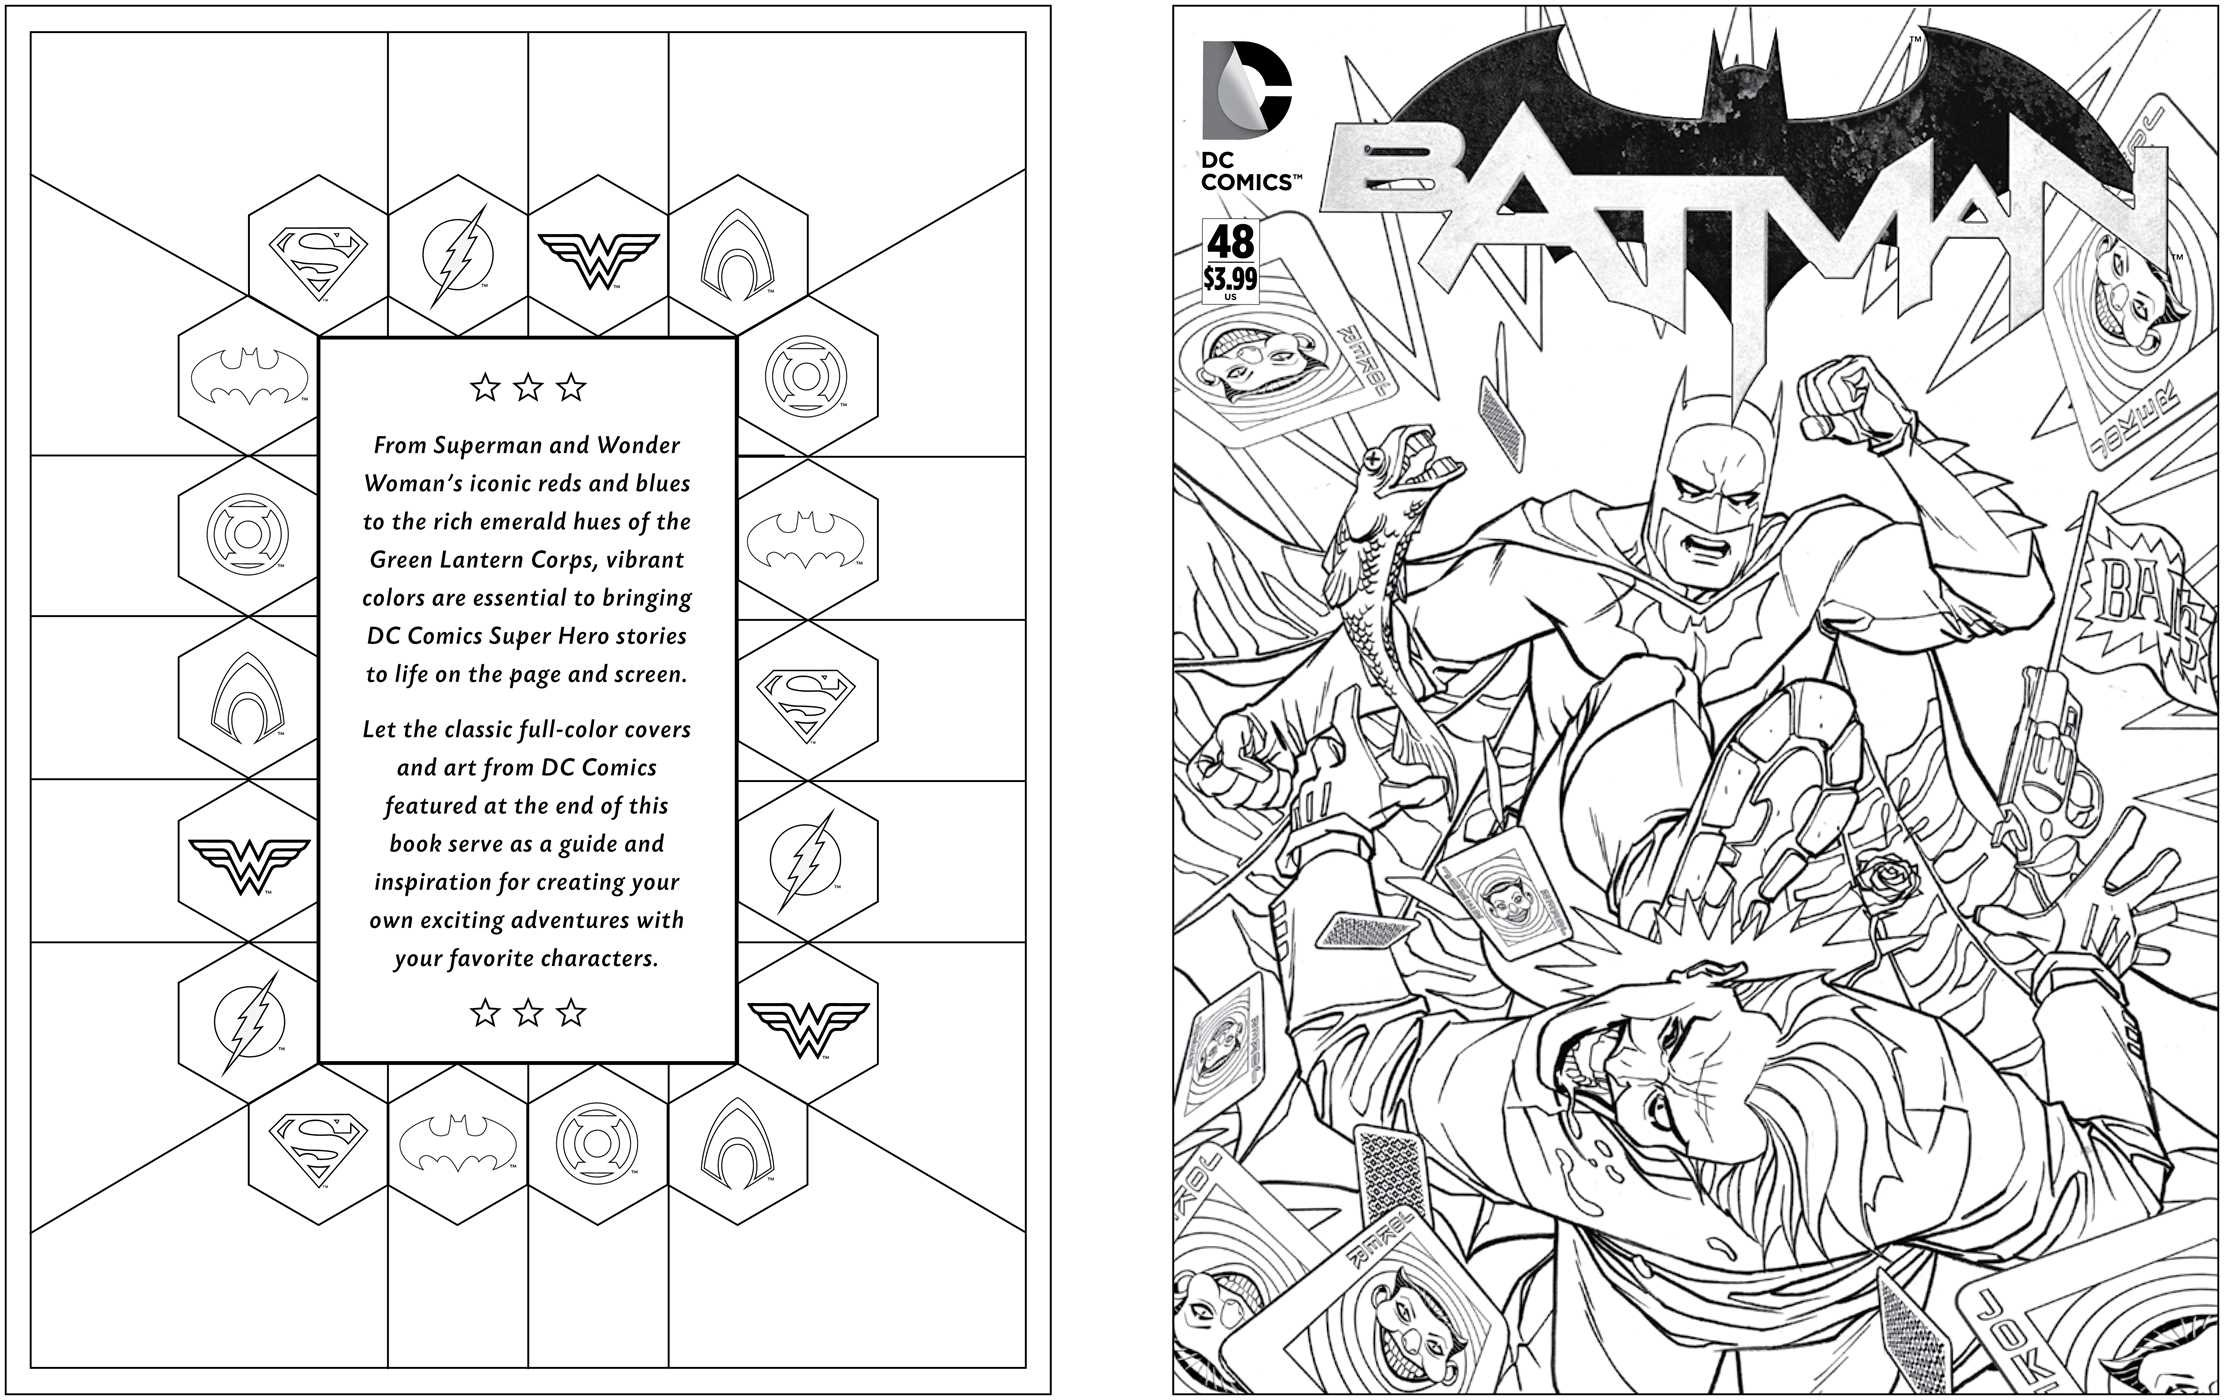 dc coloring pages Amazon.com: DC Comics Coloring Book (9781608878291): Insight  dc coloring pages